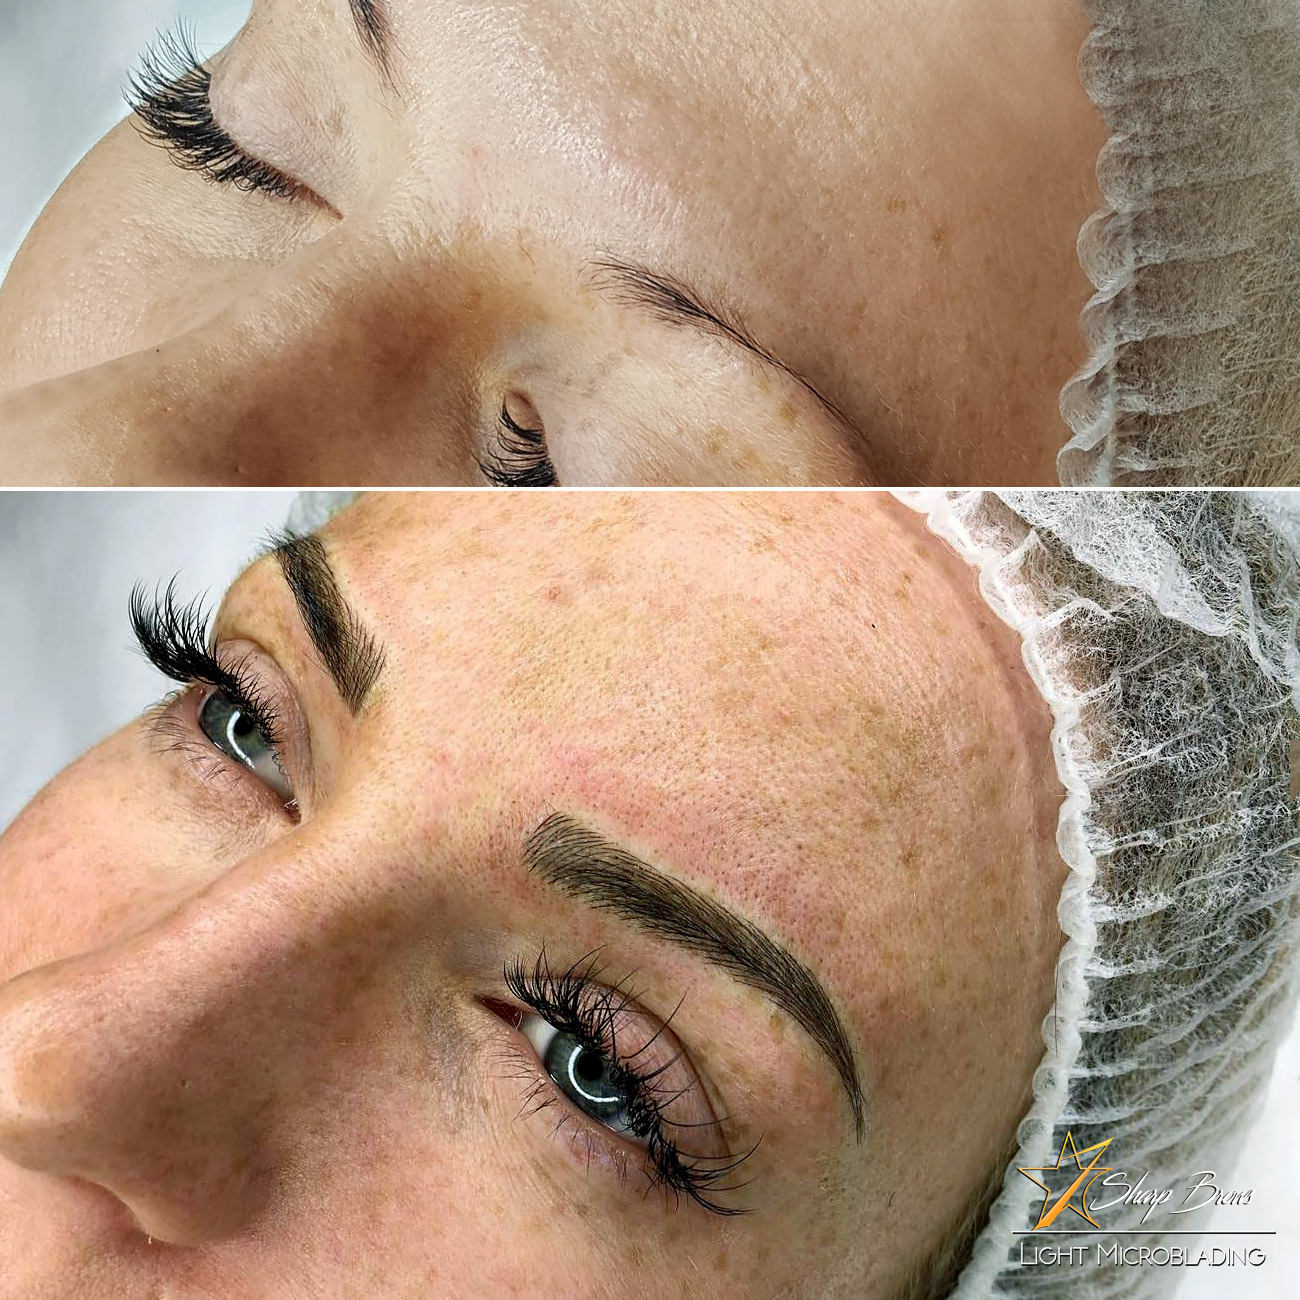 This after picture makes it very hard to believe that before the procedure the client had almost no brow hair in the beginning, back-section and the end of the brow. Also some shading was used.